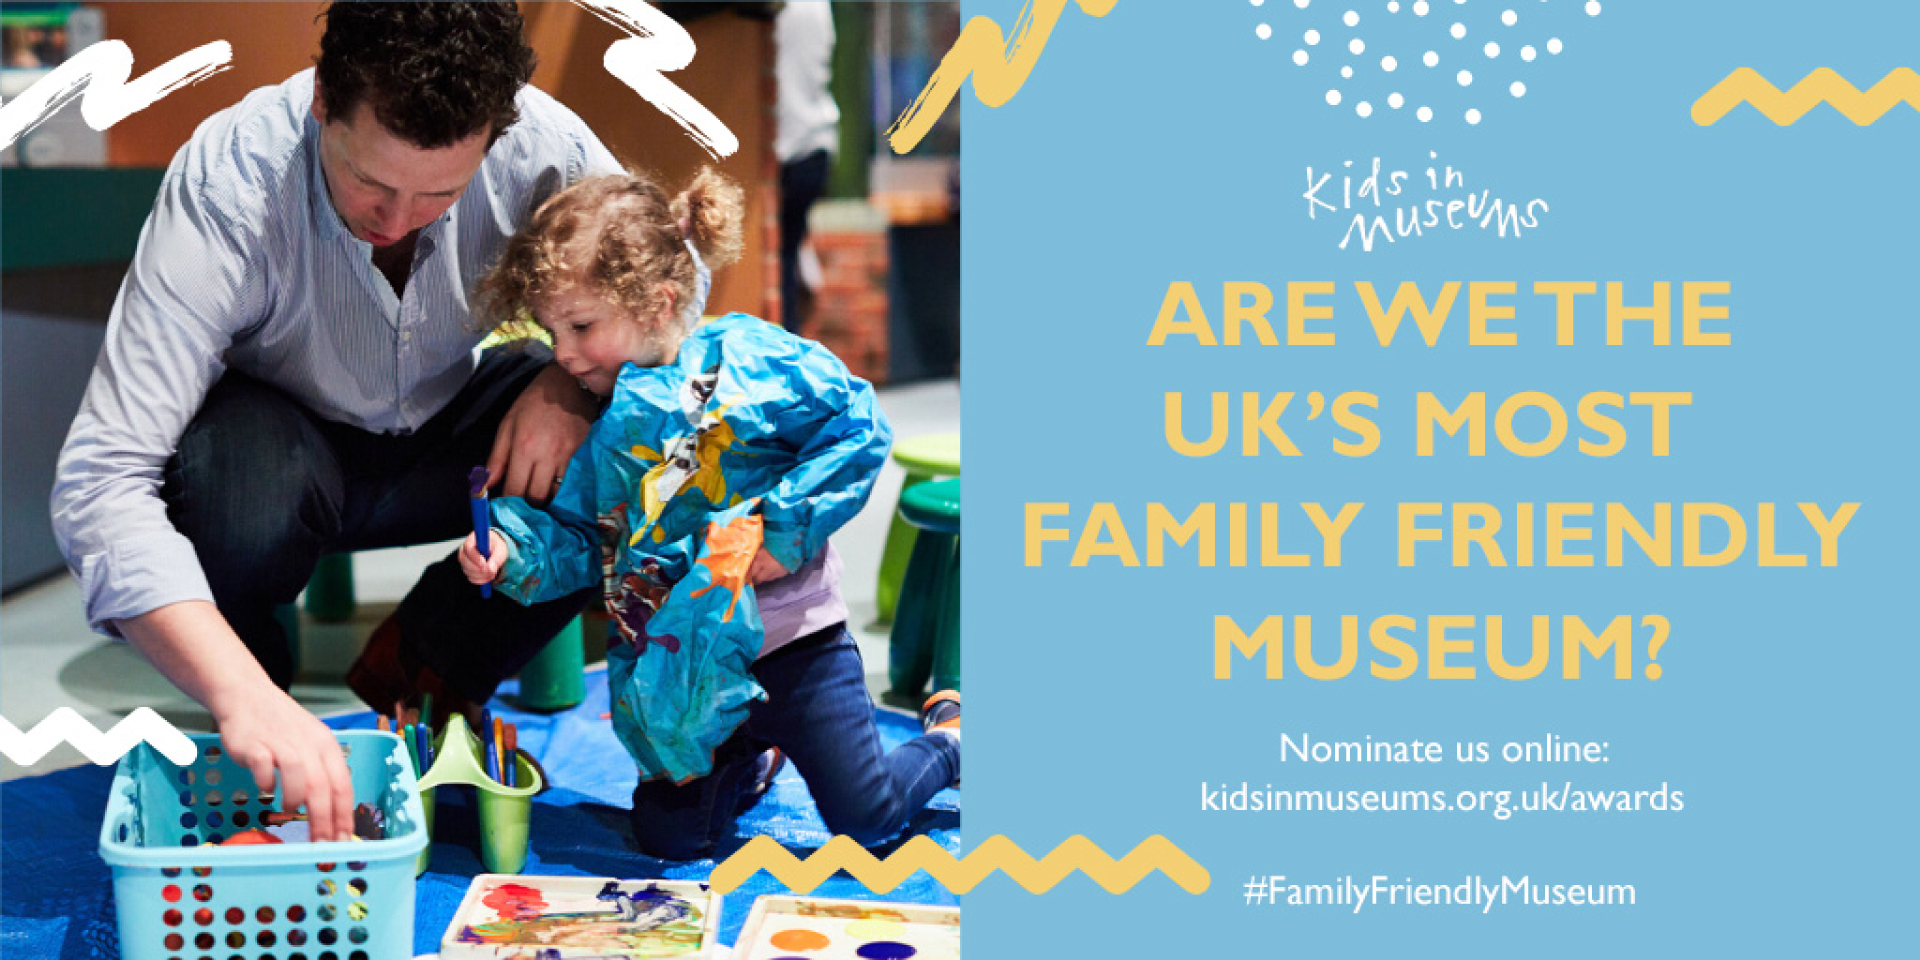 Nominate us for the Family Friendly Museum Award!